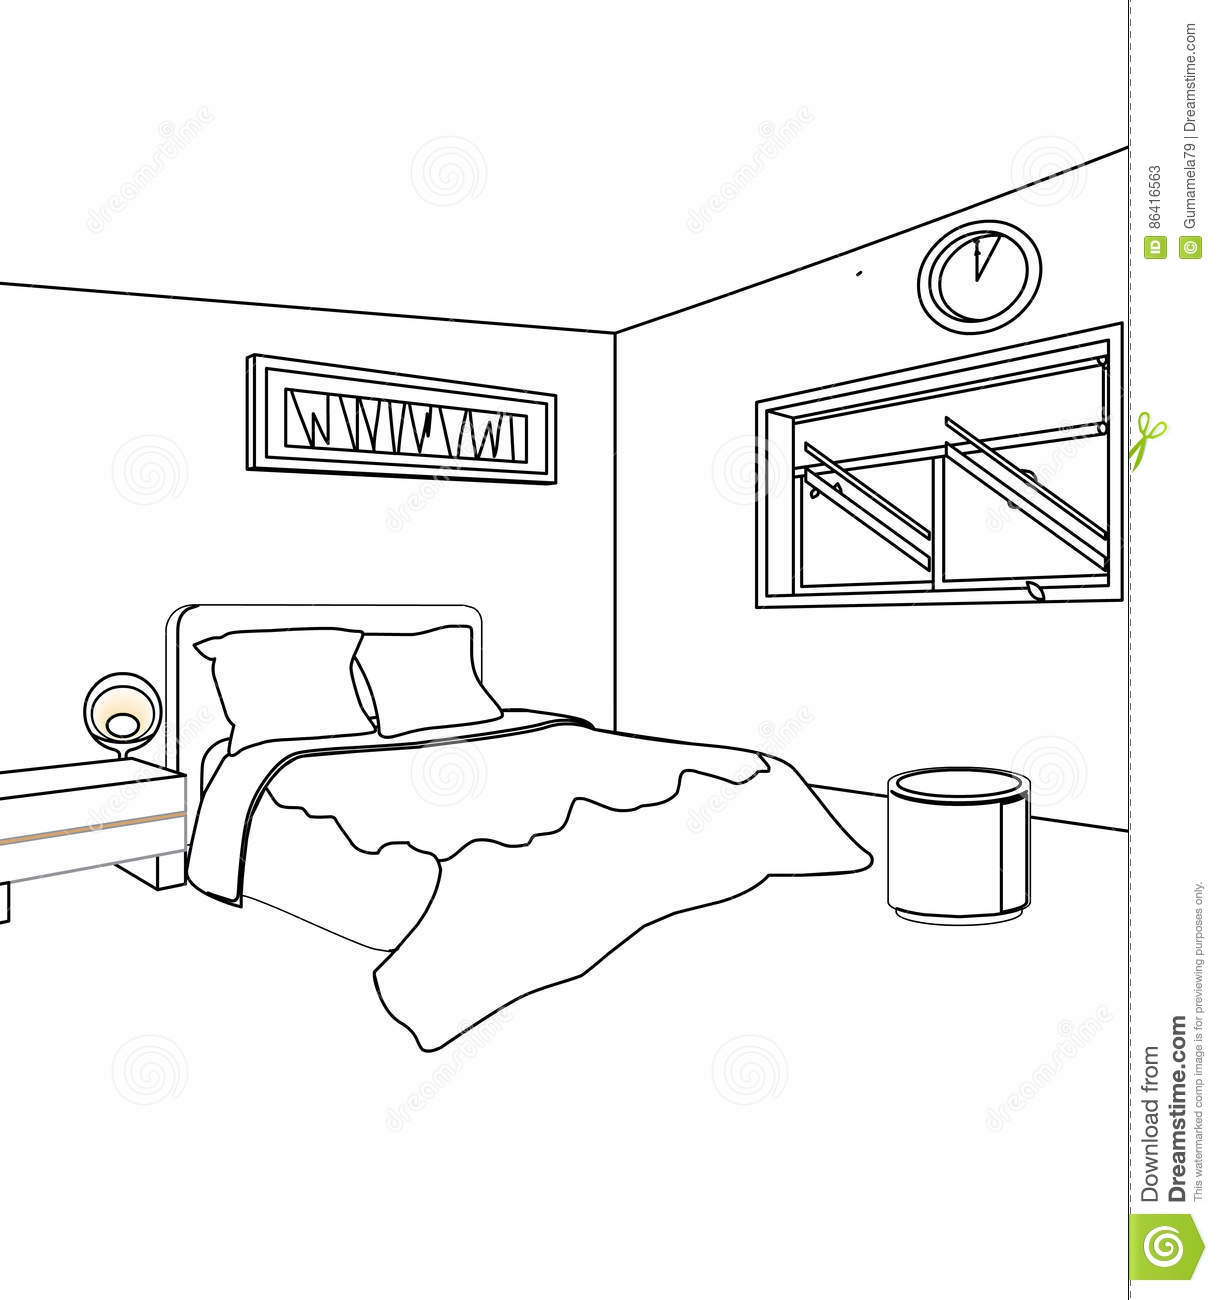 Bed room coloring page stock illustration. Illustration of